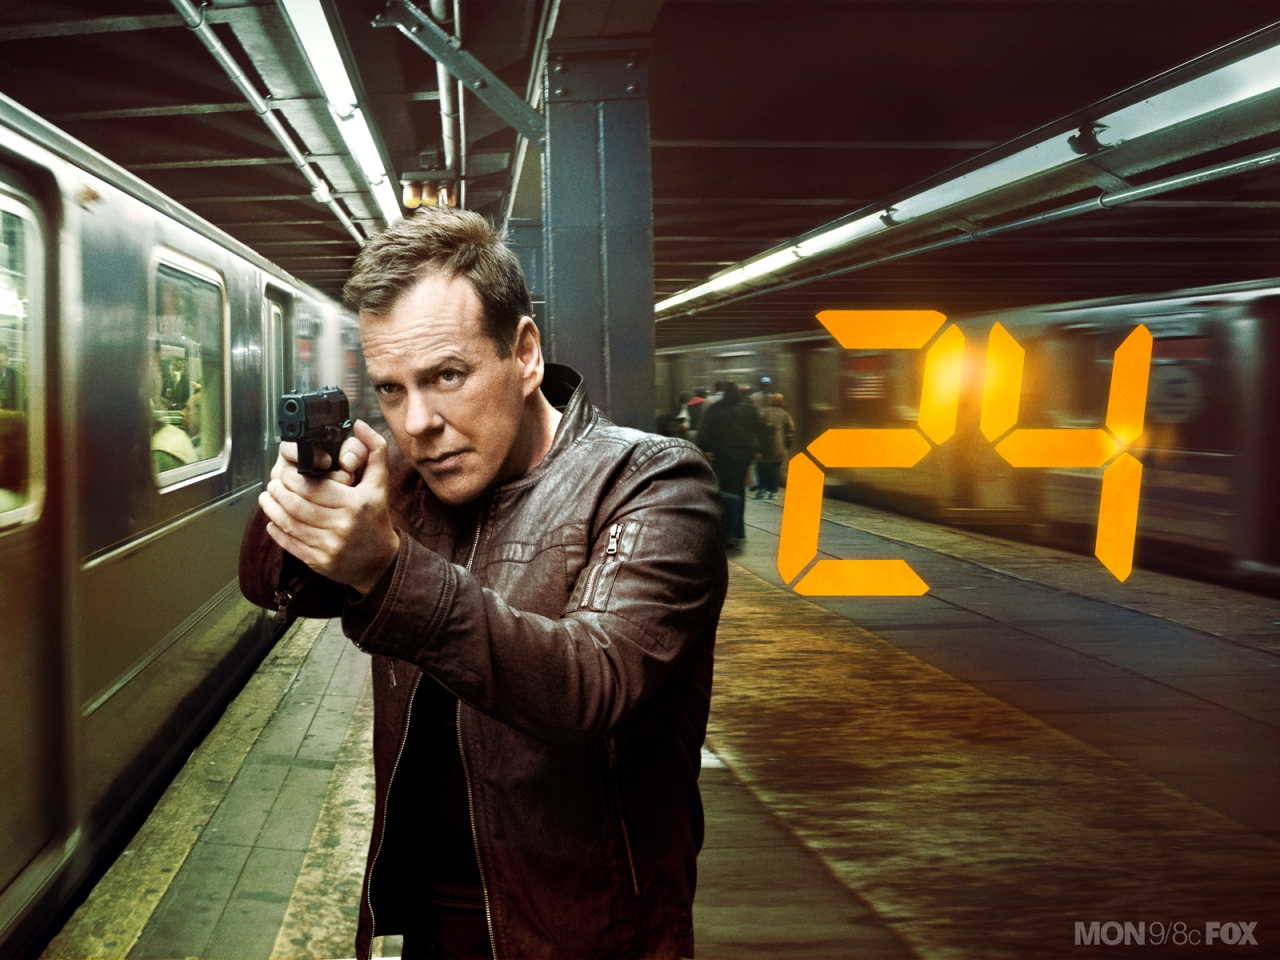 kiefer_sutherland_as_jack_bauer_in_24_wallpaper_2-normal